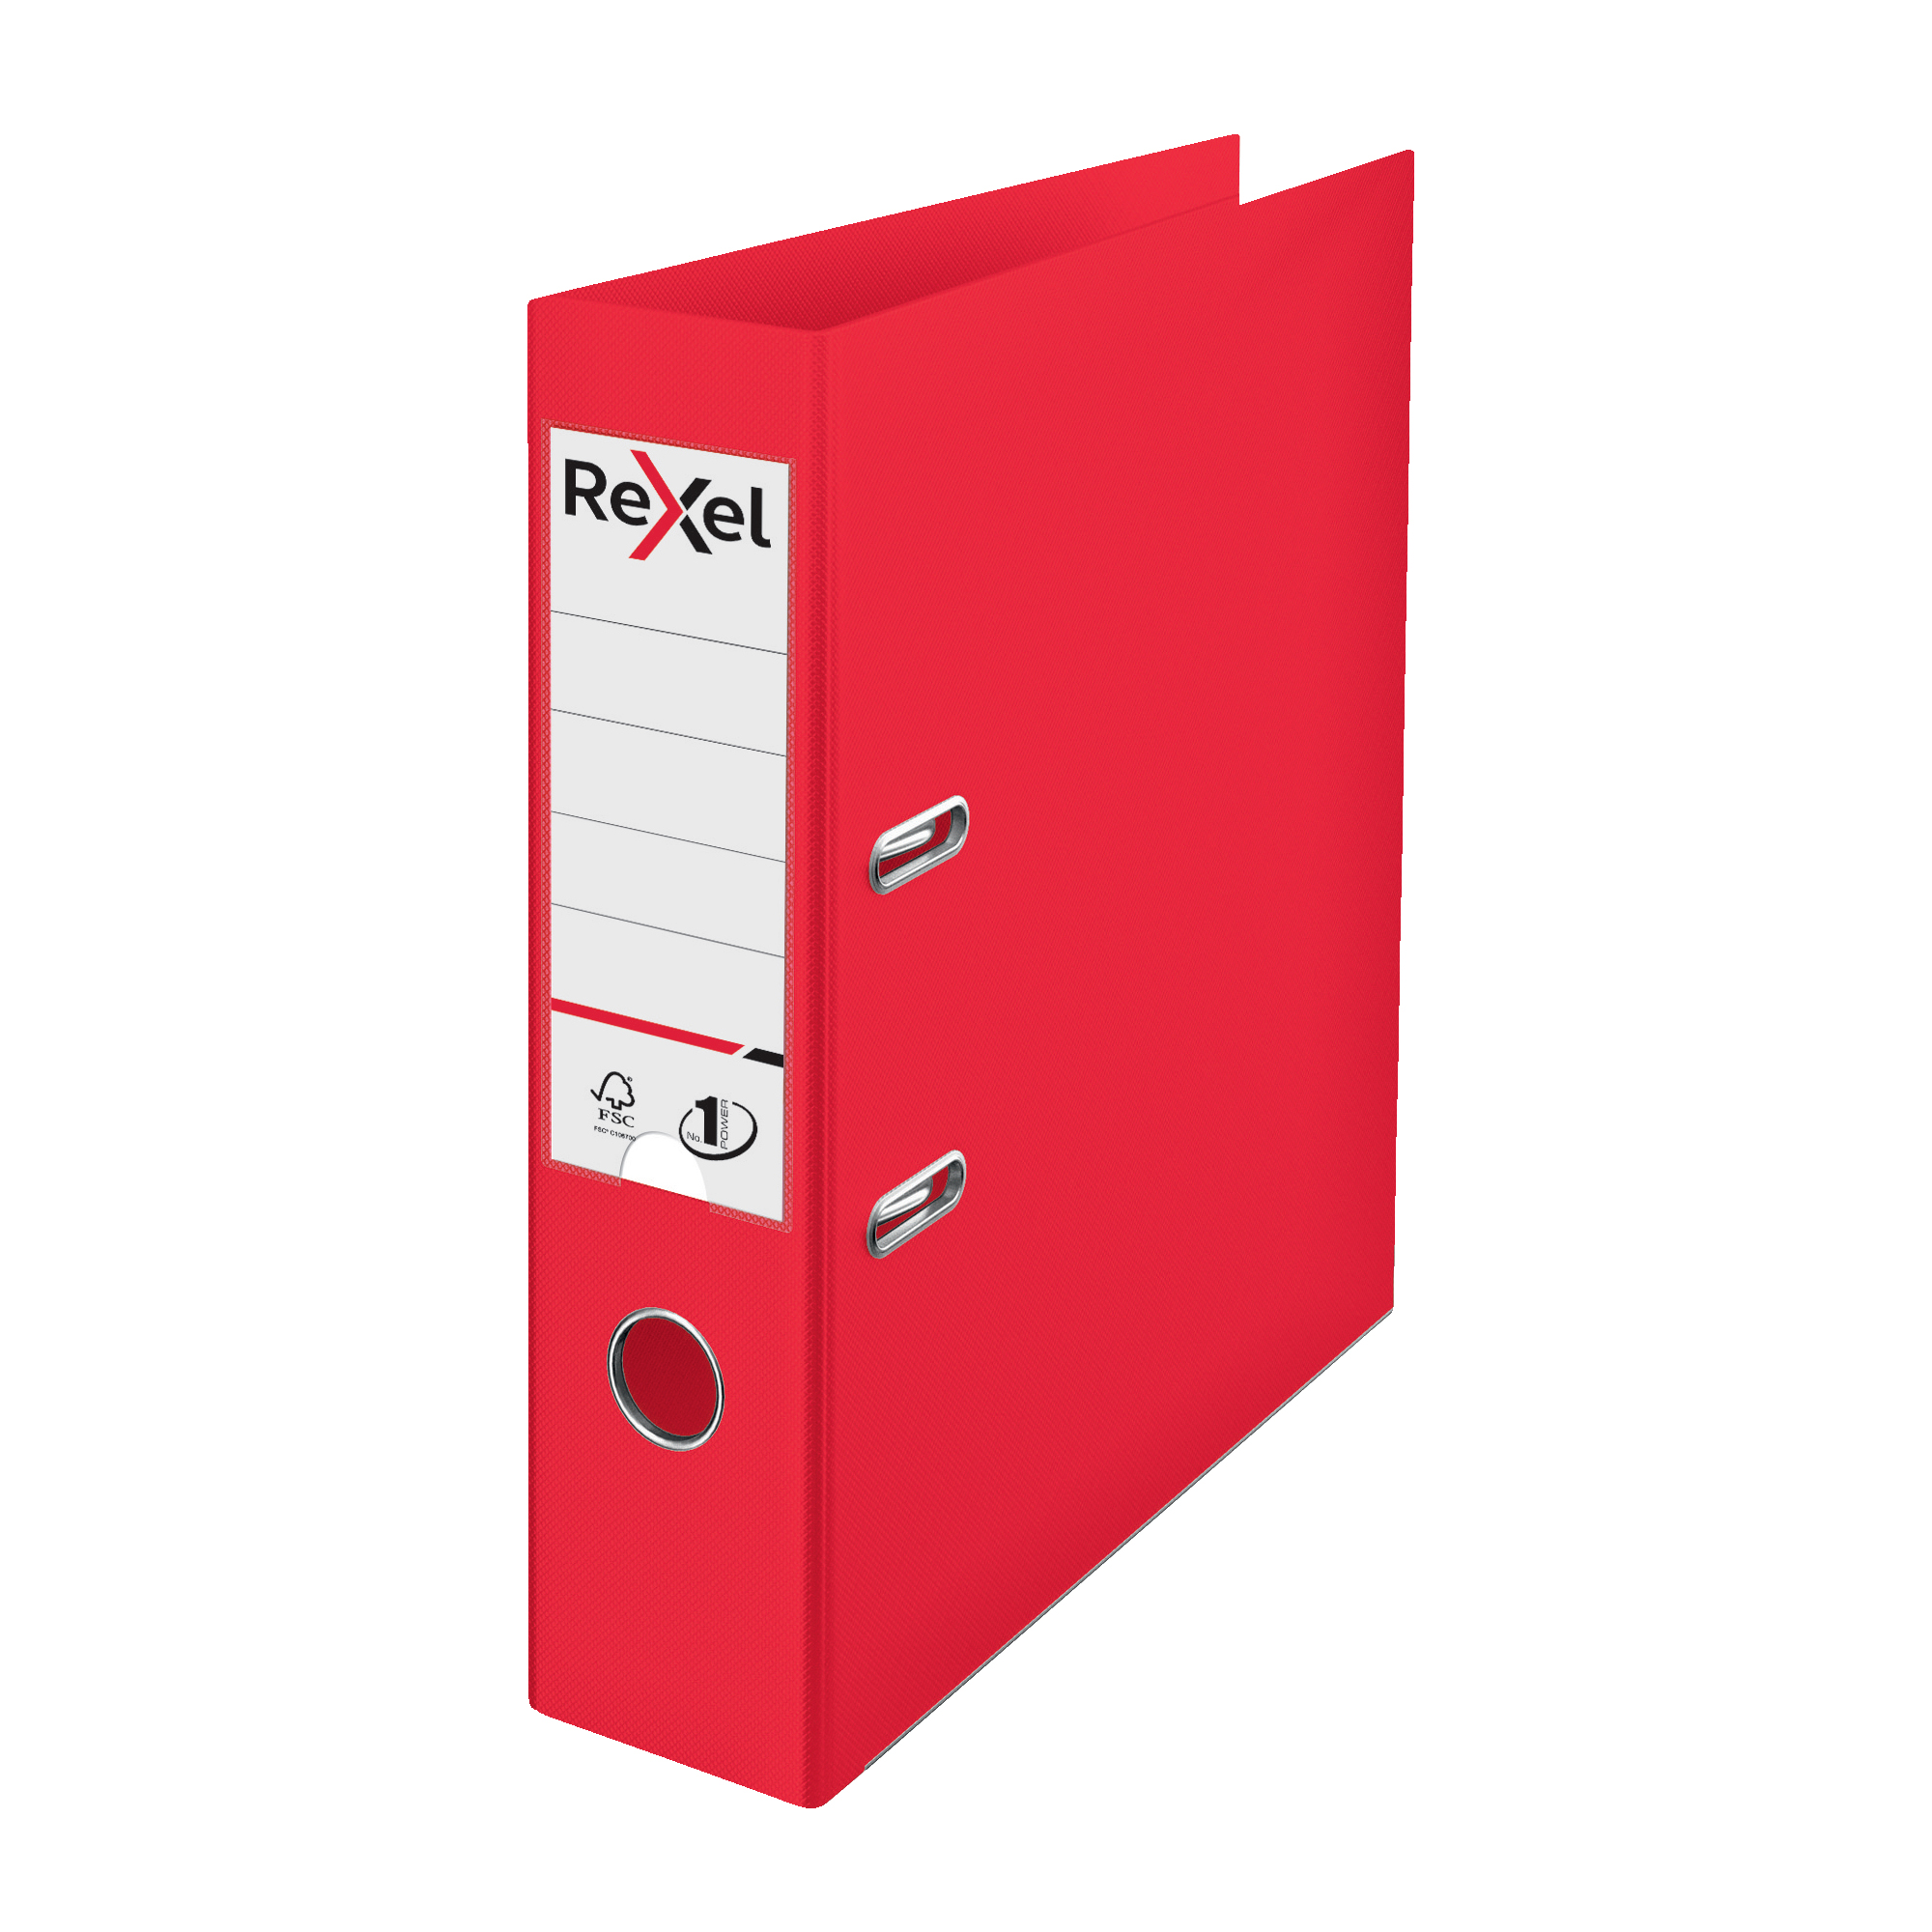 Lever arch file Rexel Choices LArch File PP 75mm A4 Red Ref 2115504